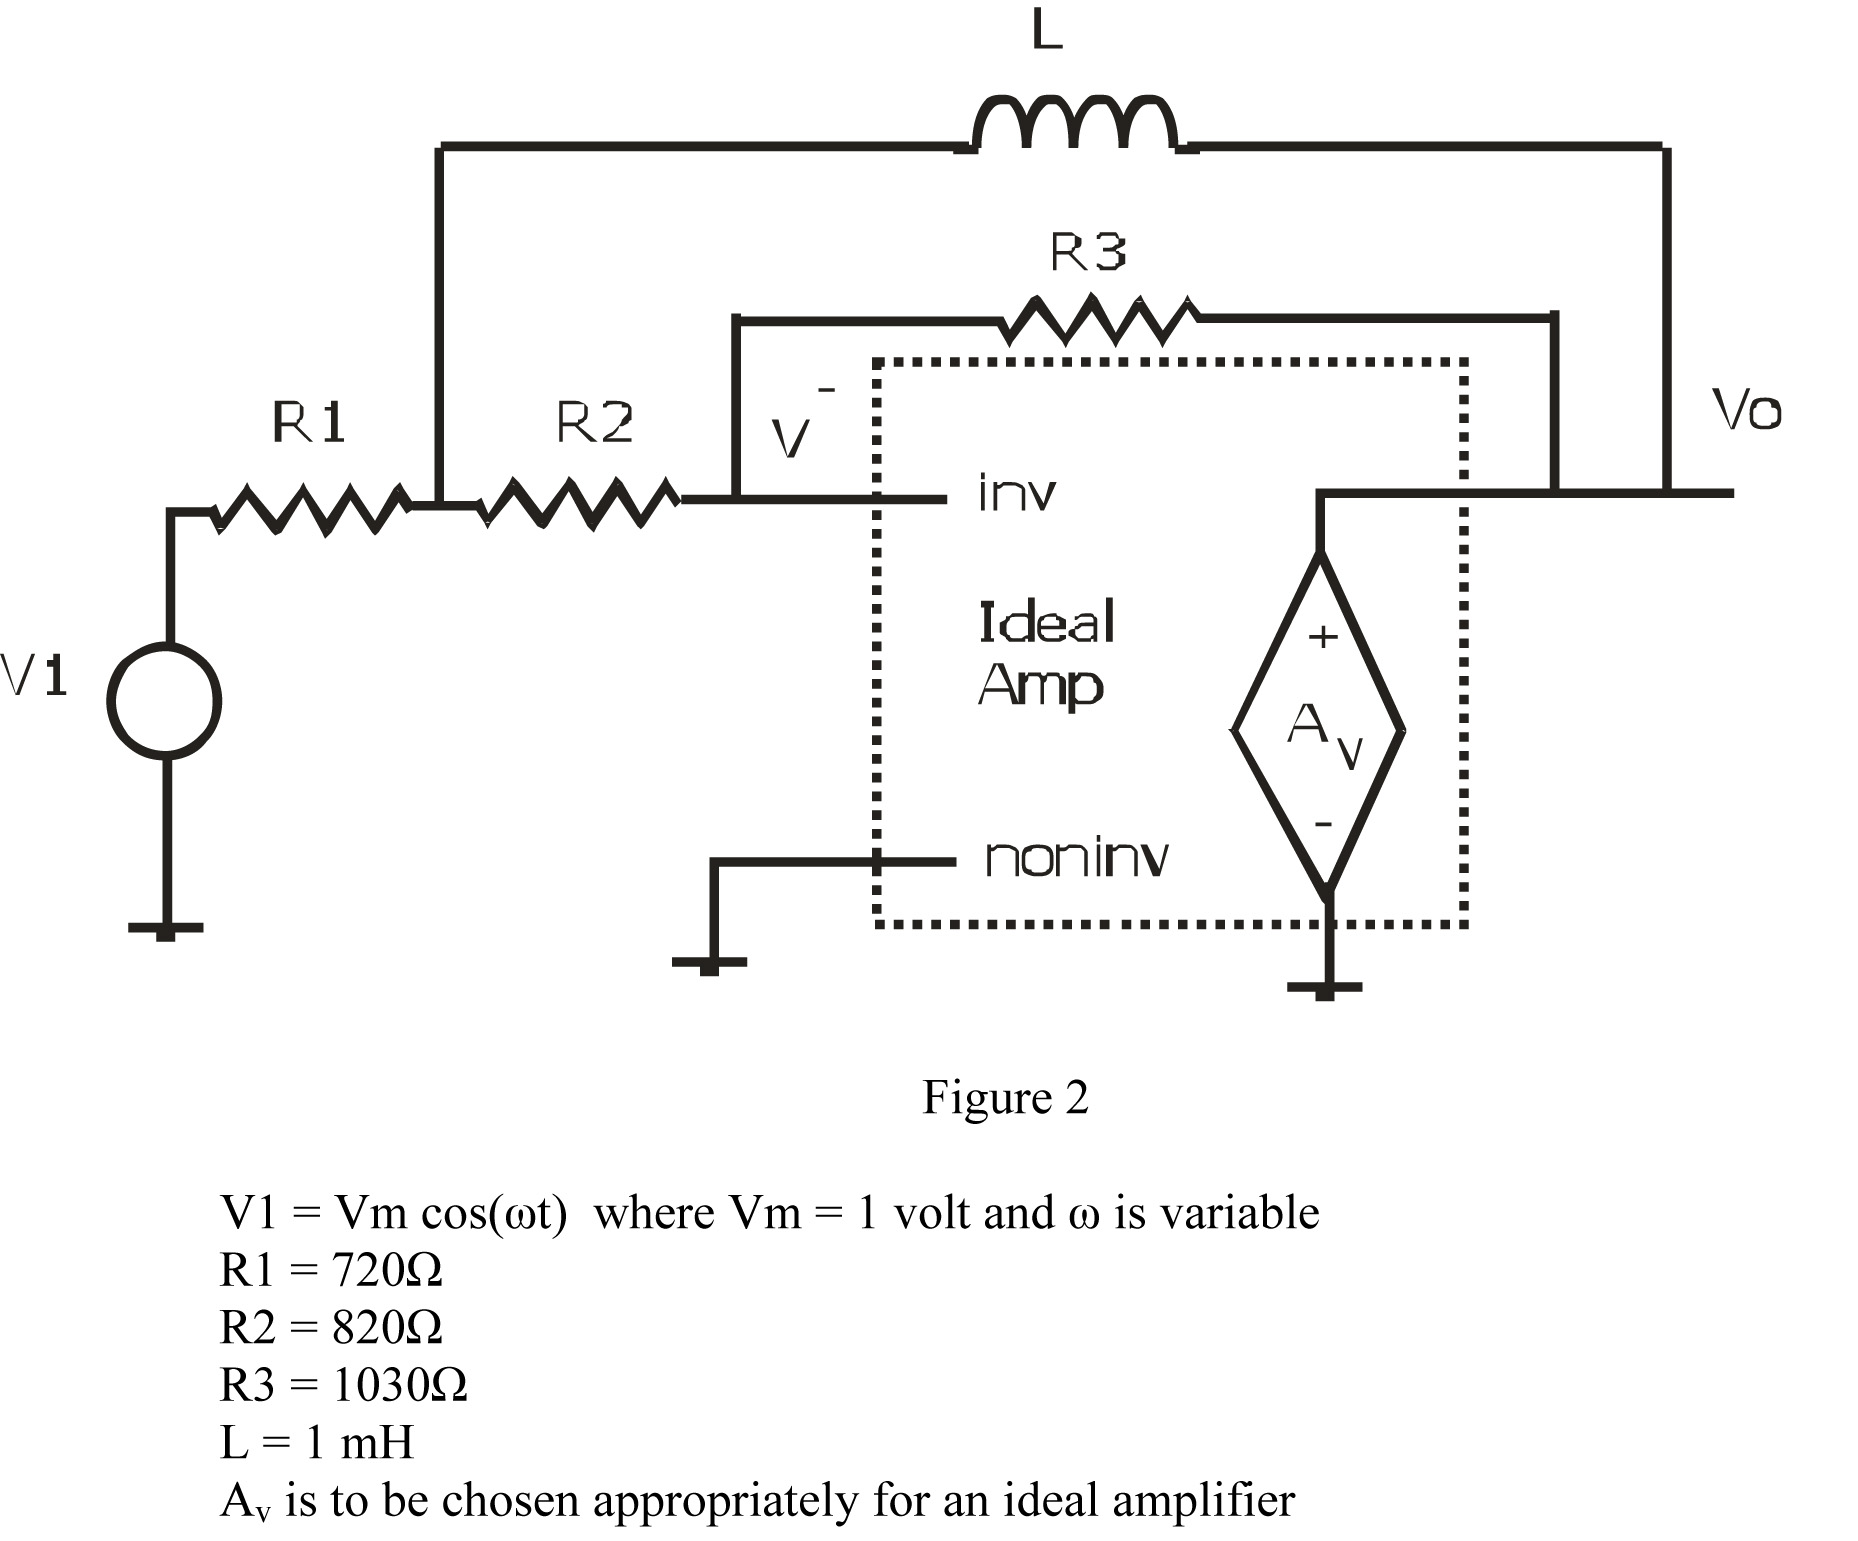 Figure shows the small signal model of an amplifyi